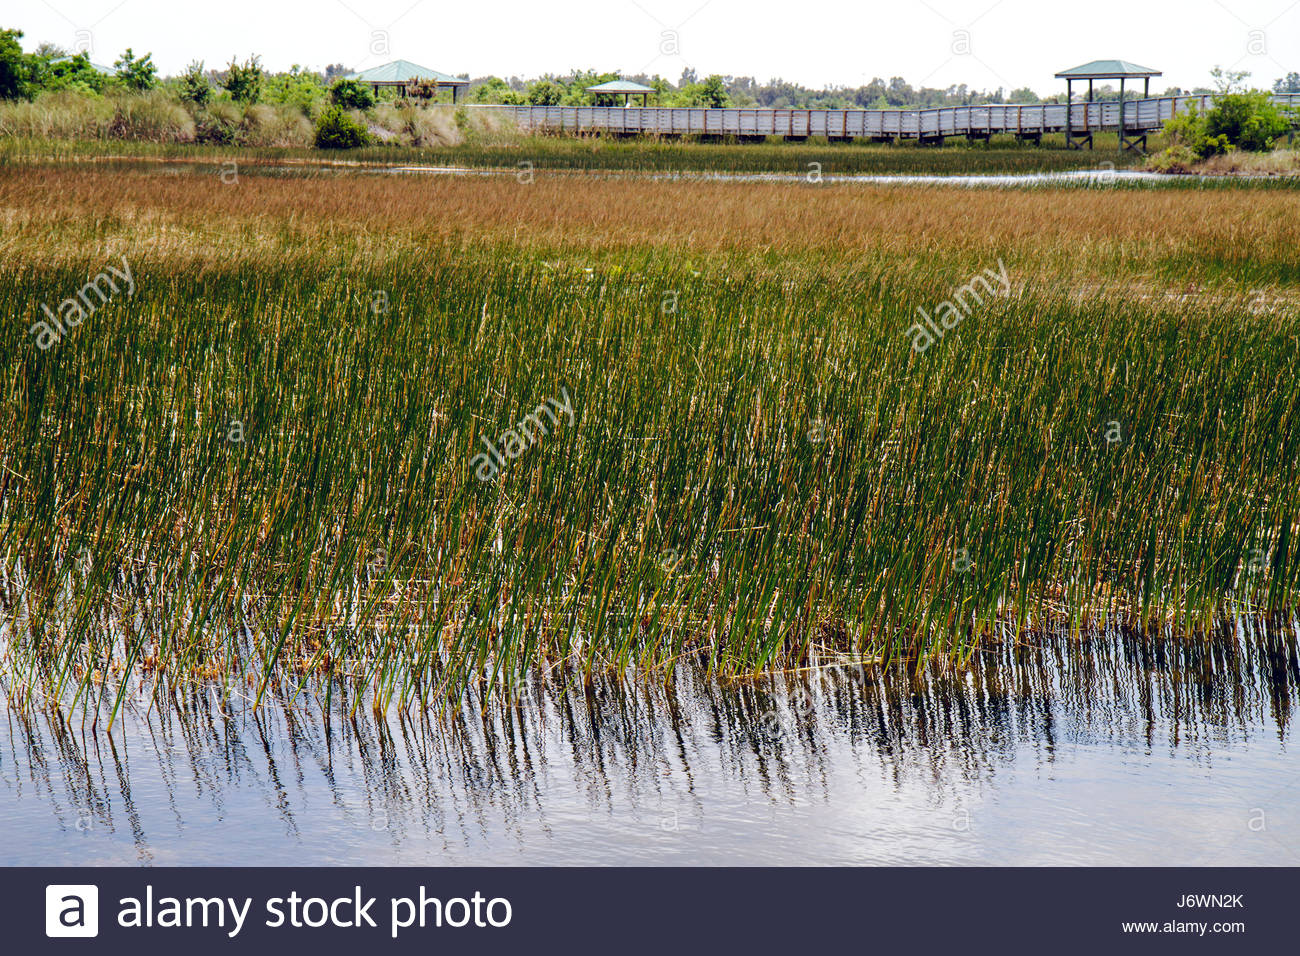 Fort Lauderdale Ft. Florida Pembroke Pines Chapel Trail Nature Preserve saw grass - Stock Image